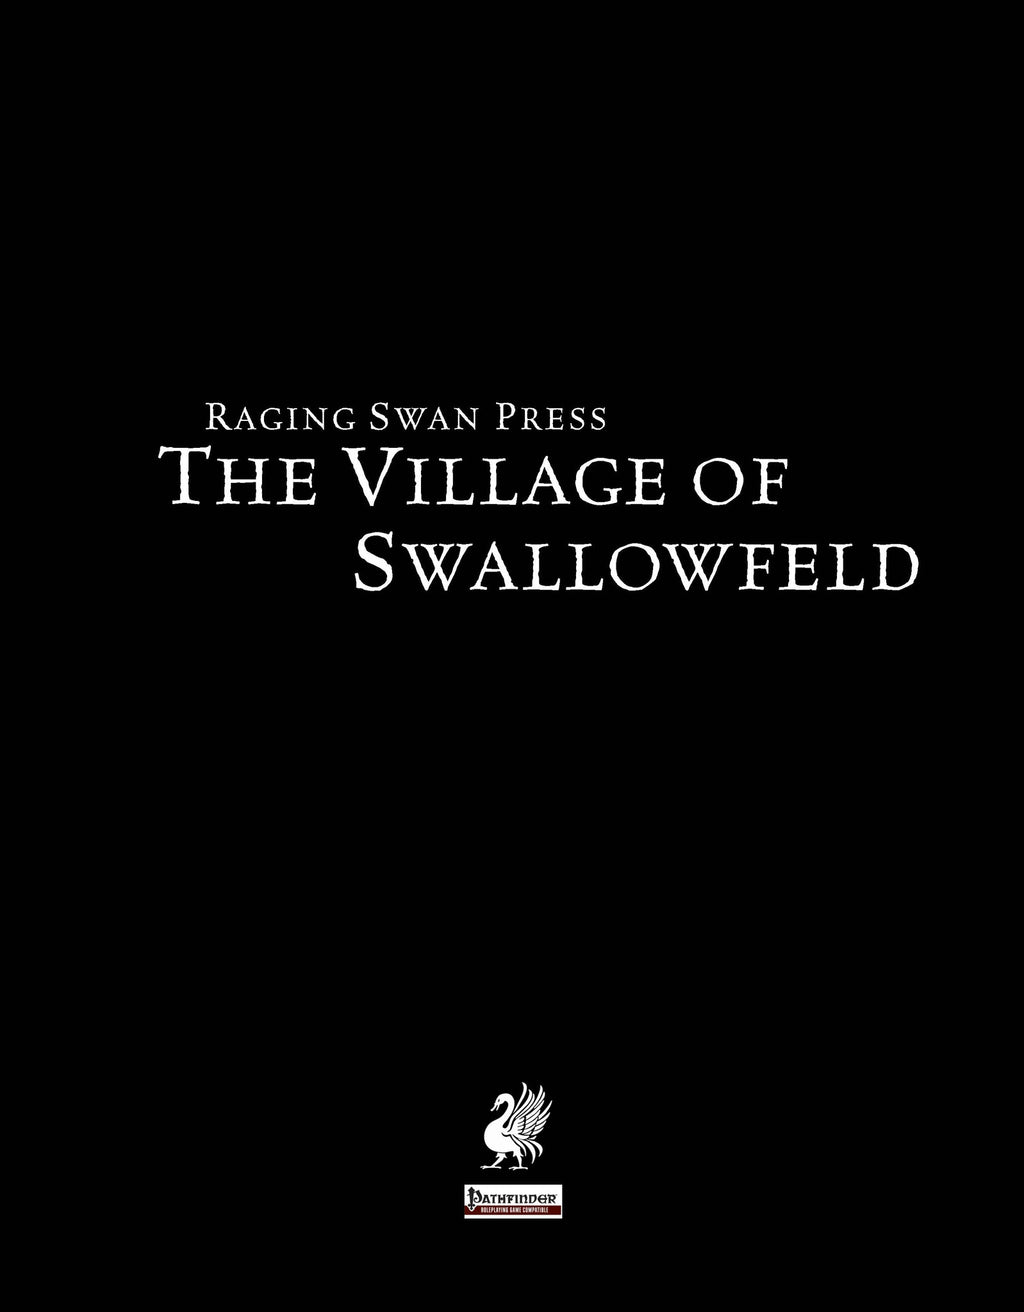 The Village of Swallowfeld